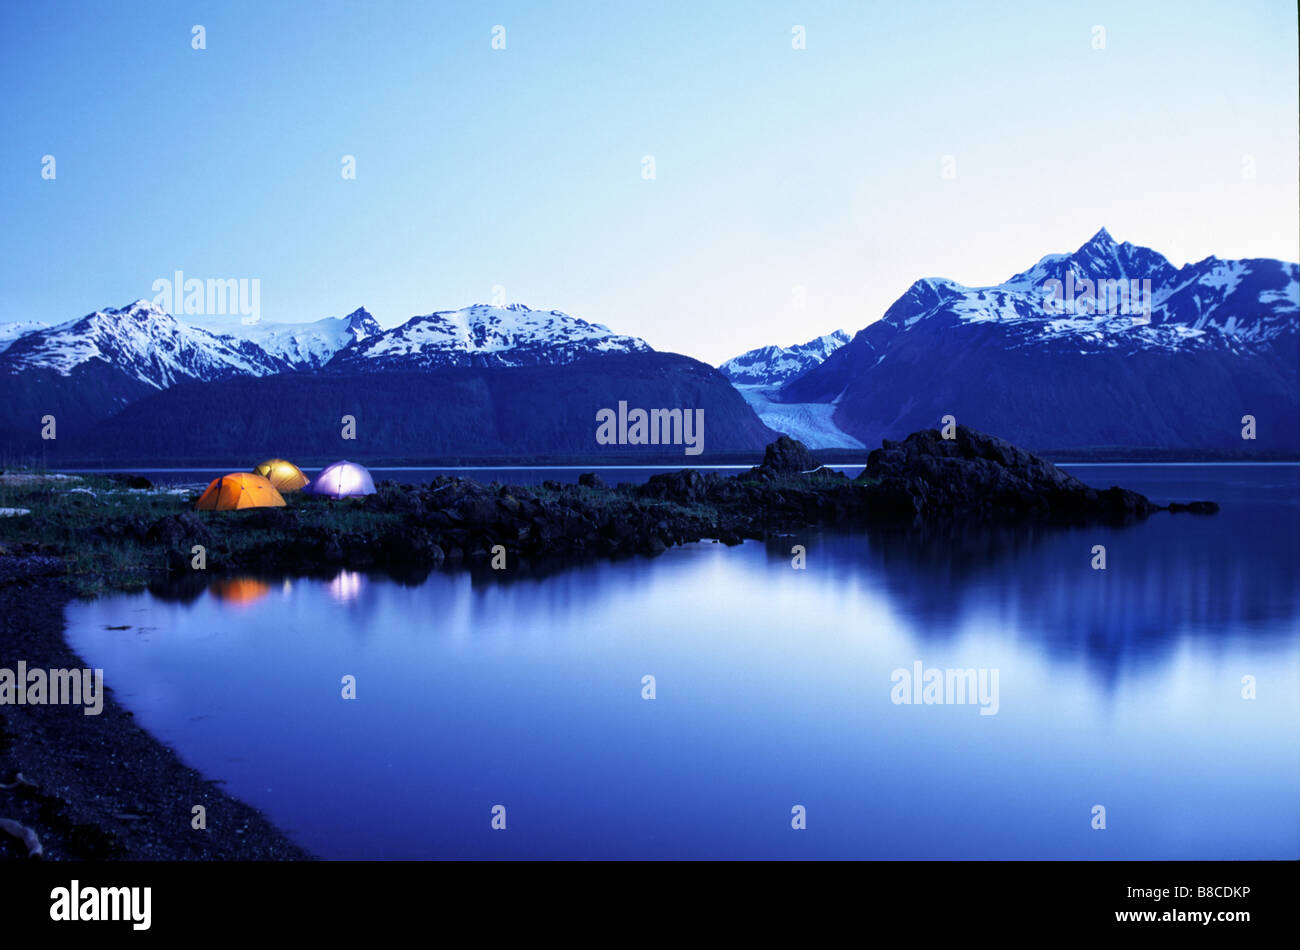 Campsite, Seduction Point, Haines, Alaska - Stock Image